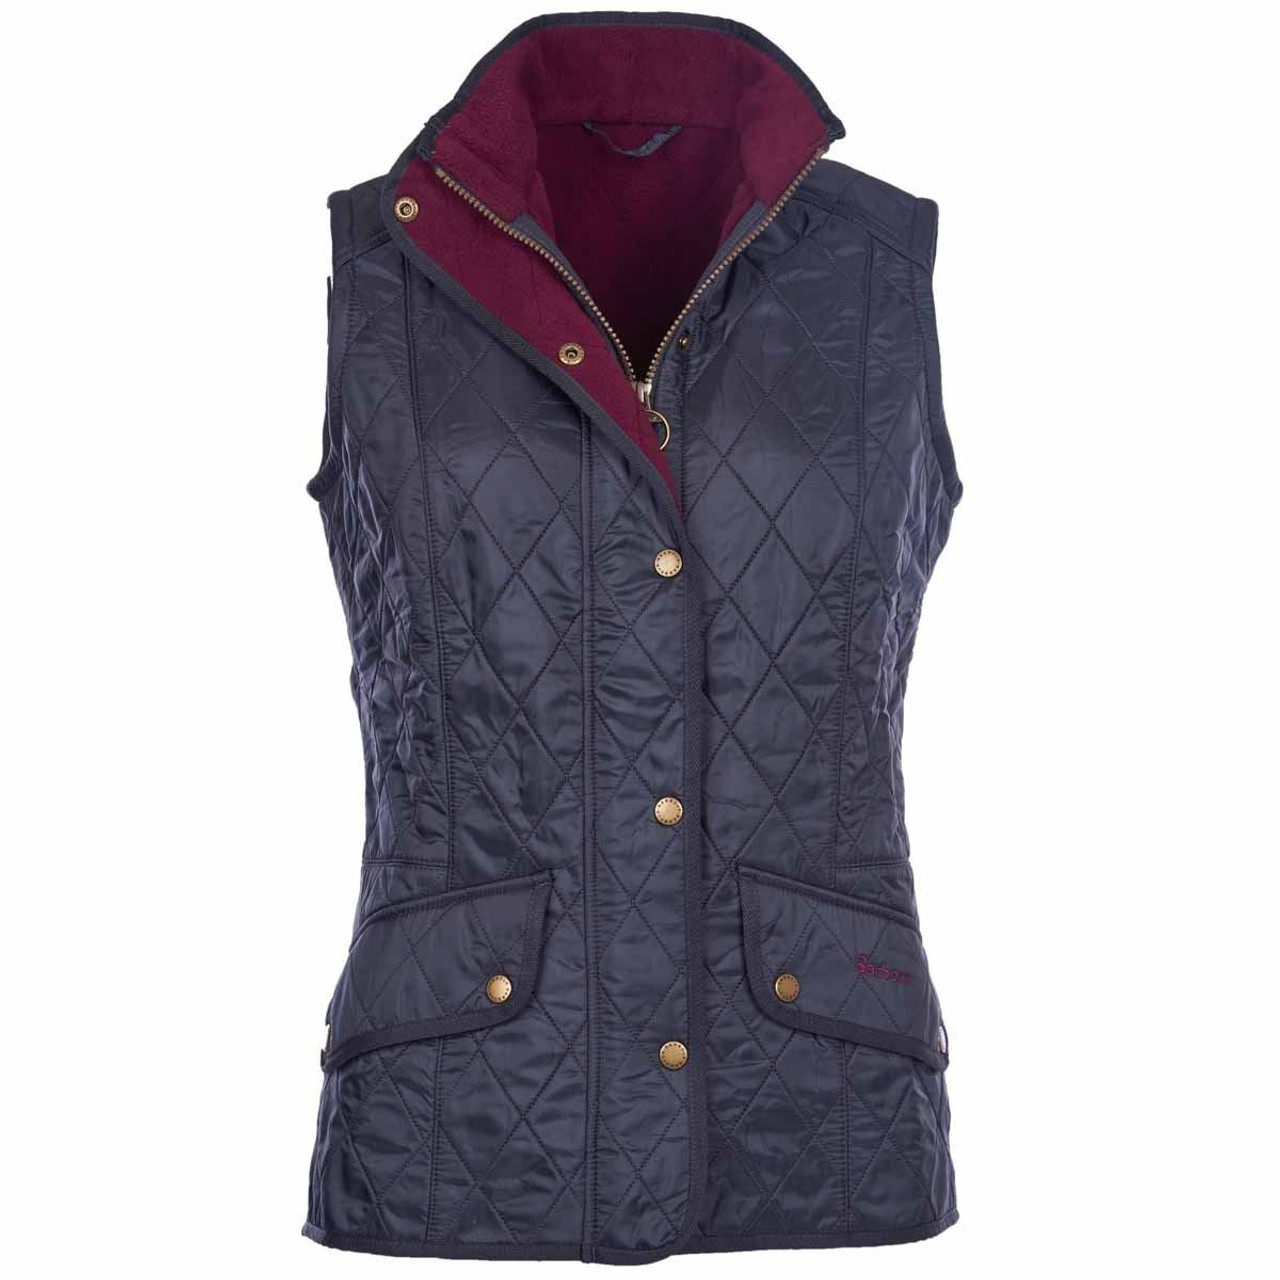 Navy/Merlot Barbour Womens Cavalry Gilet